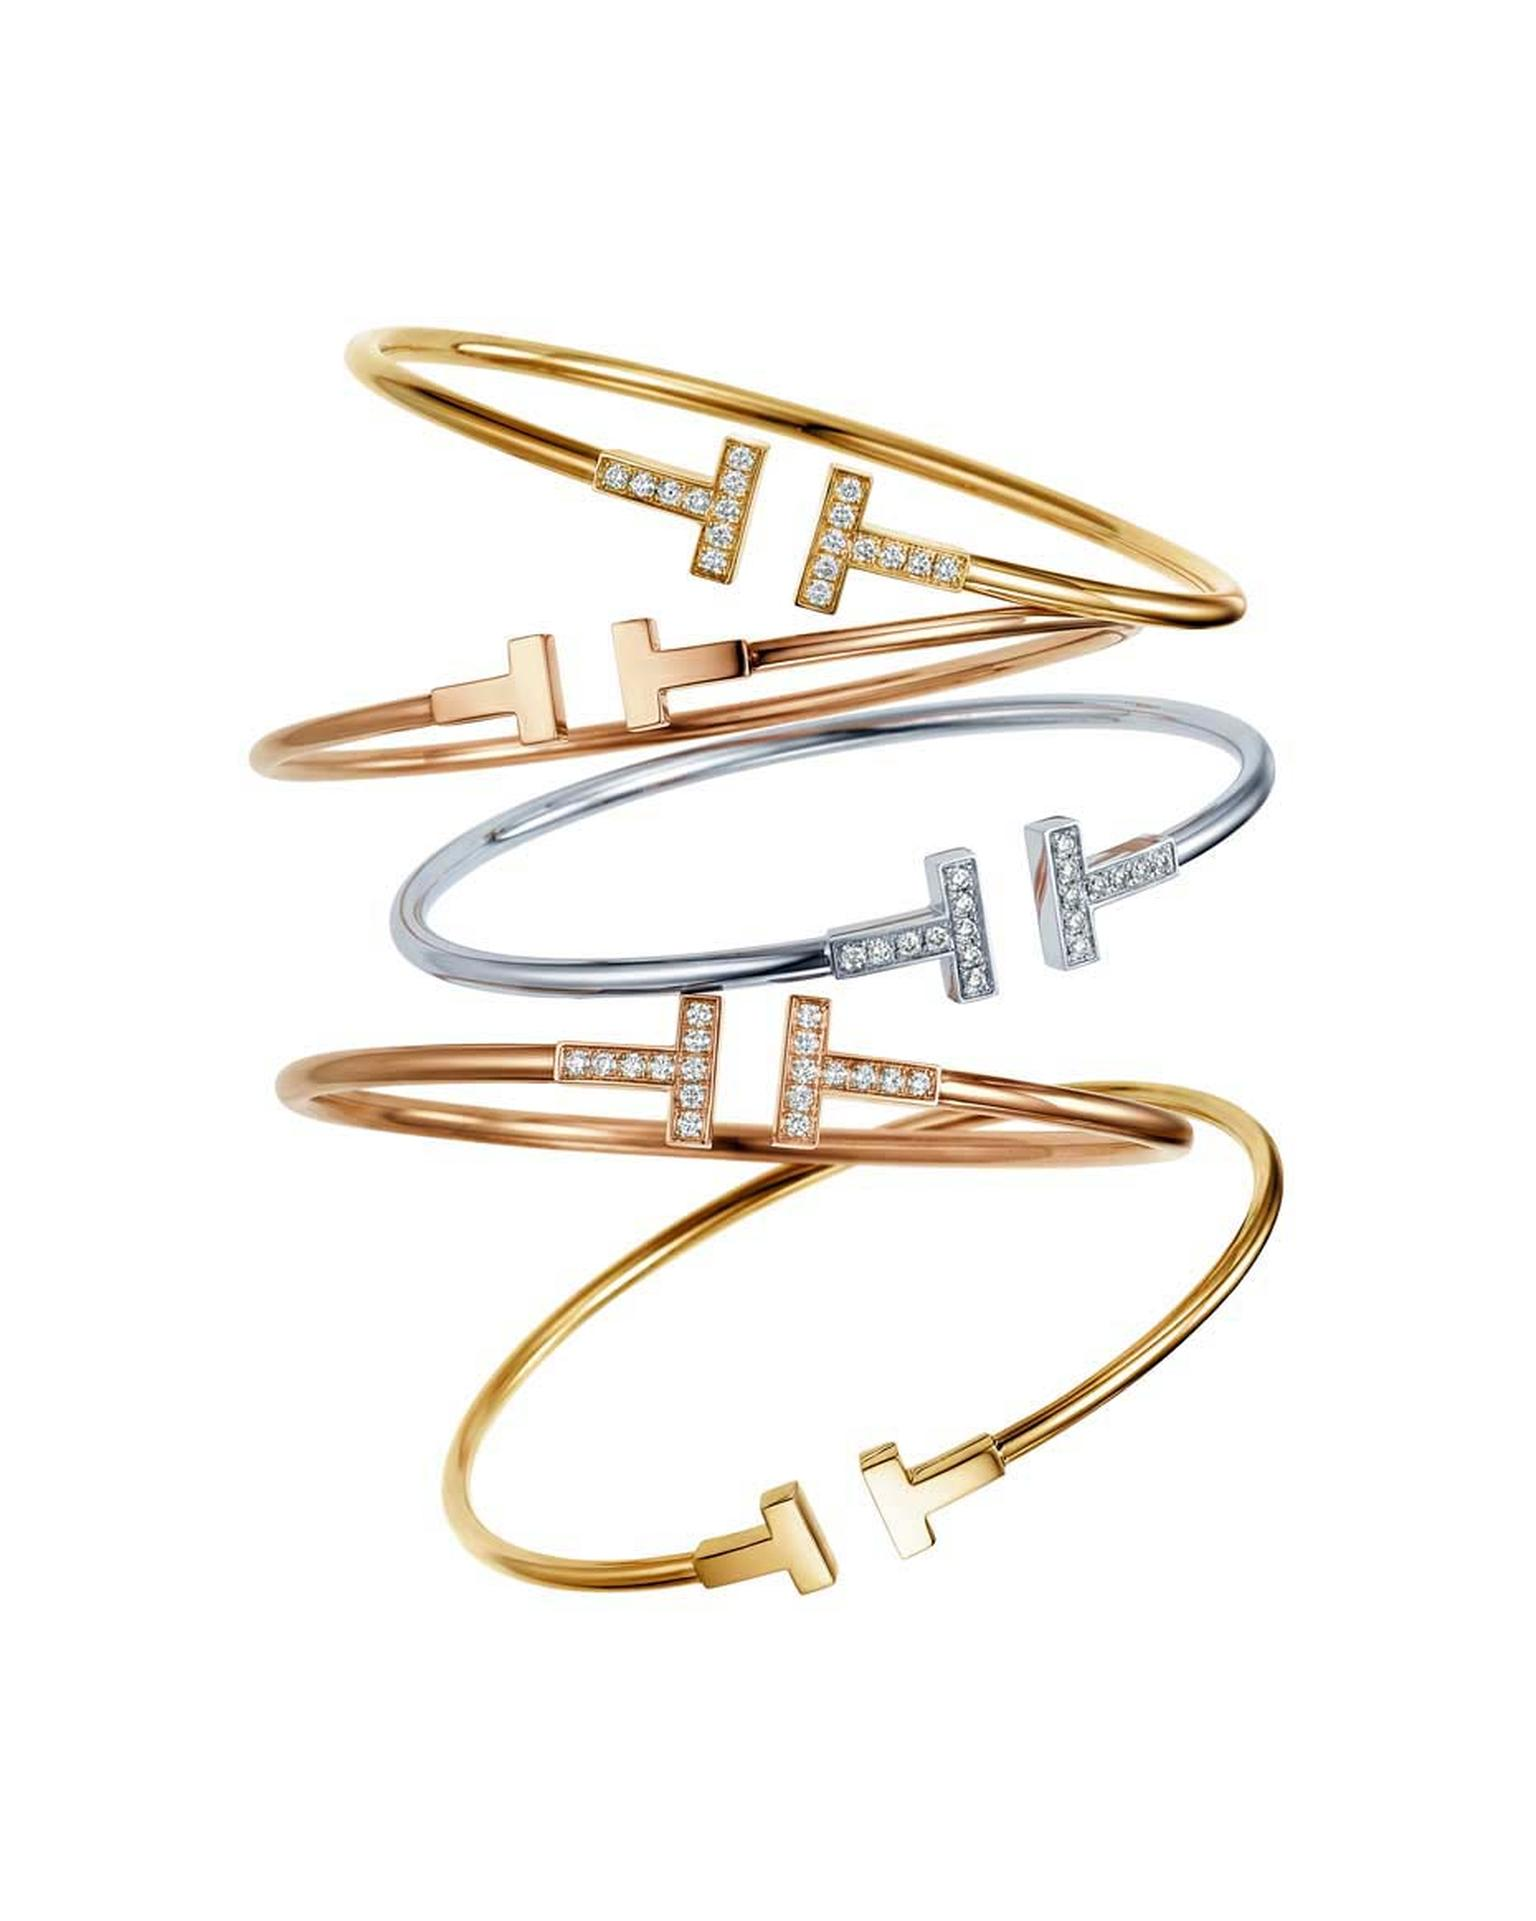 Two graphic diamond-studded T's accentuate the simple lines of the Tiffany & Co. Tiffany T collection wire bracelets, available in white, yellow and rose gold, with or without diamonds.